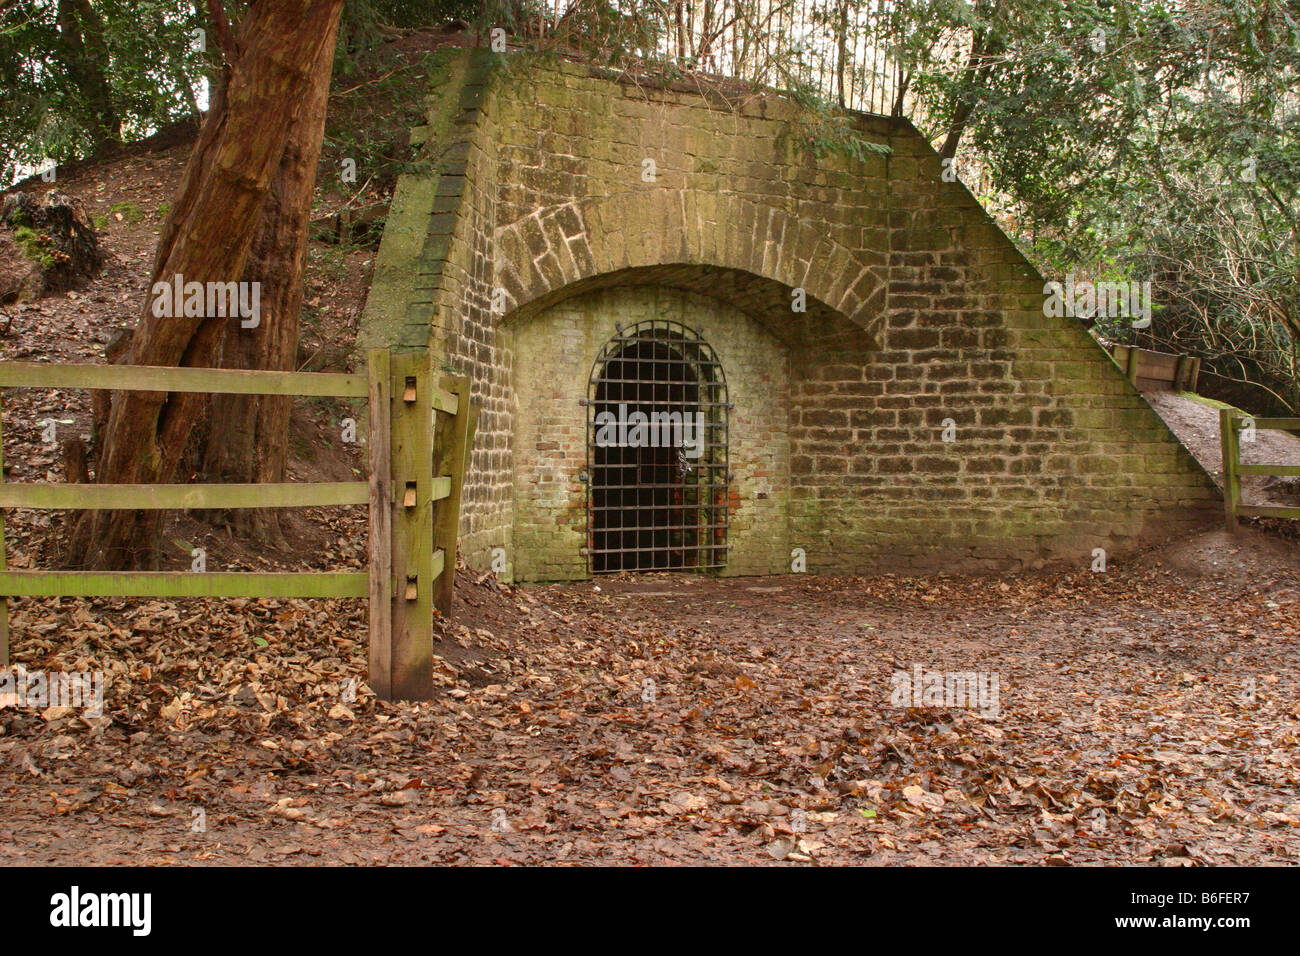 The Ice House Rufford Park Nottinghamshire - Stock Image